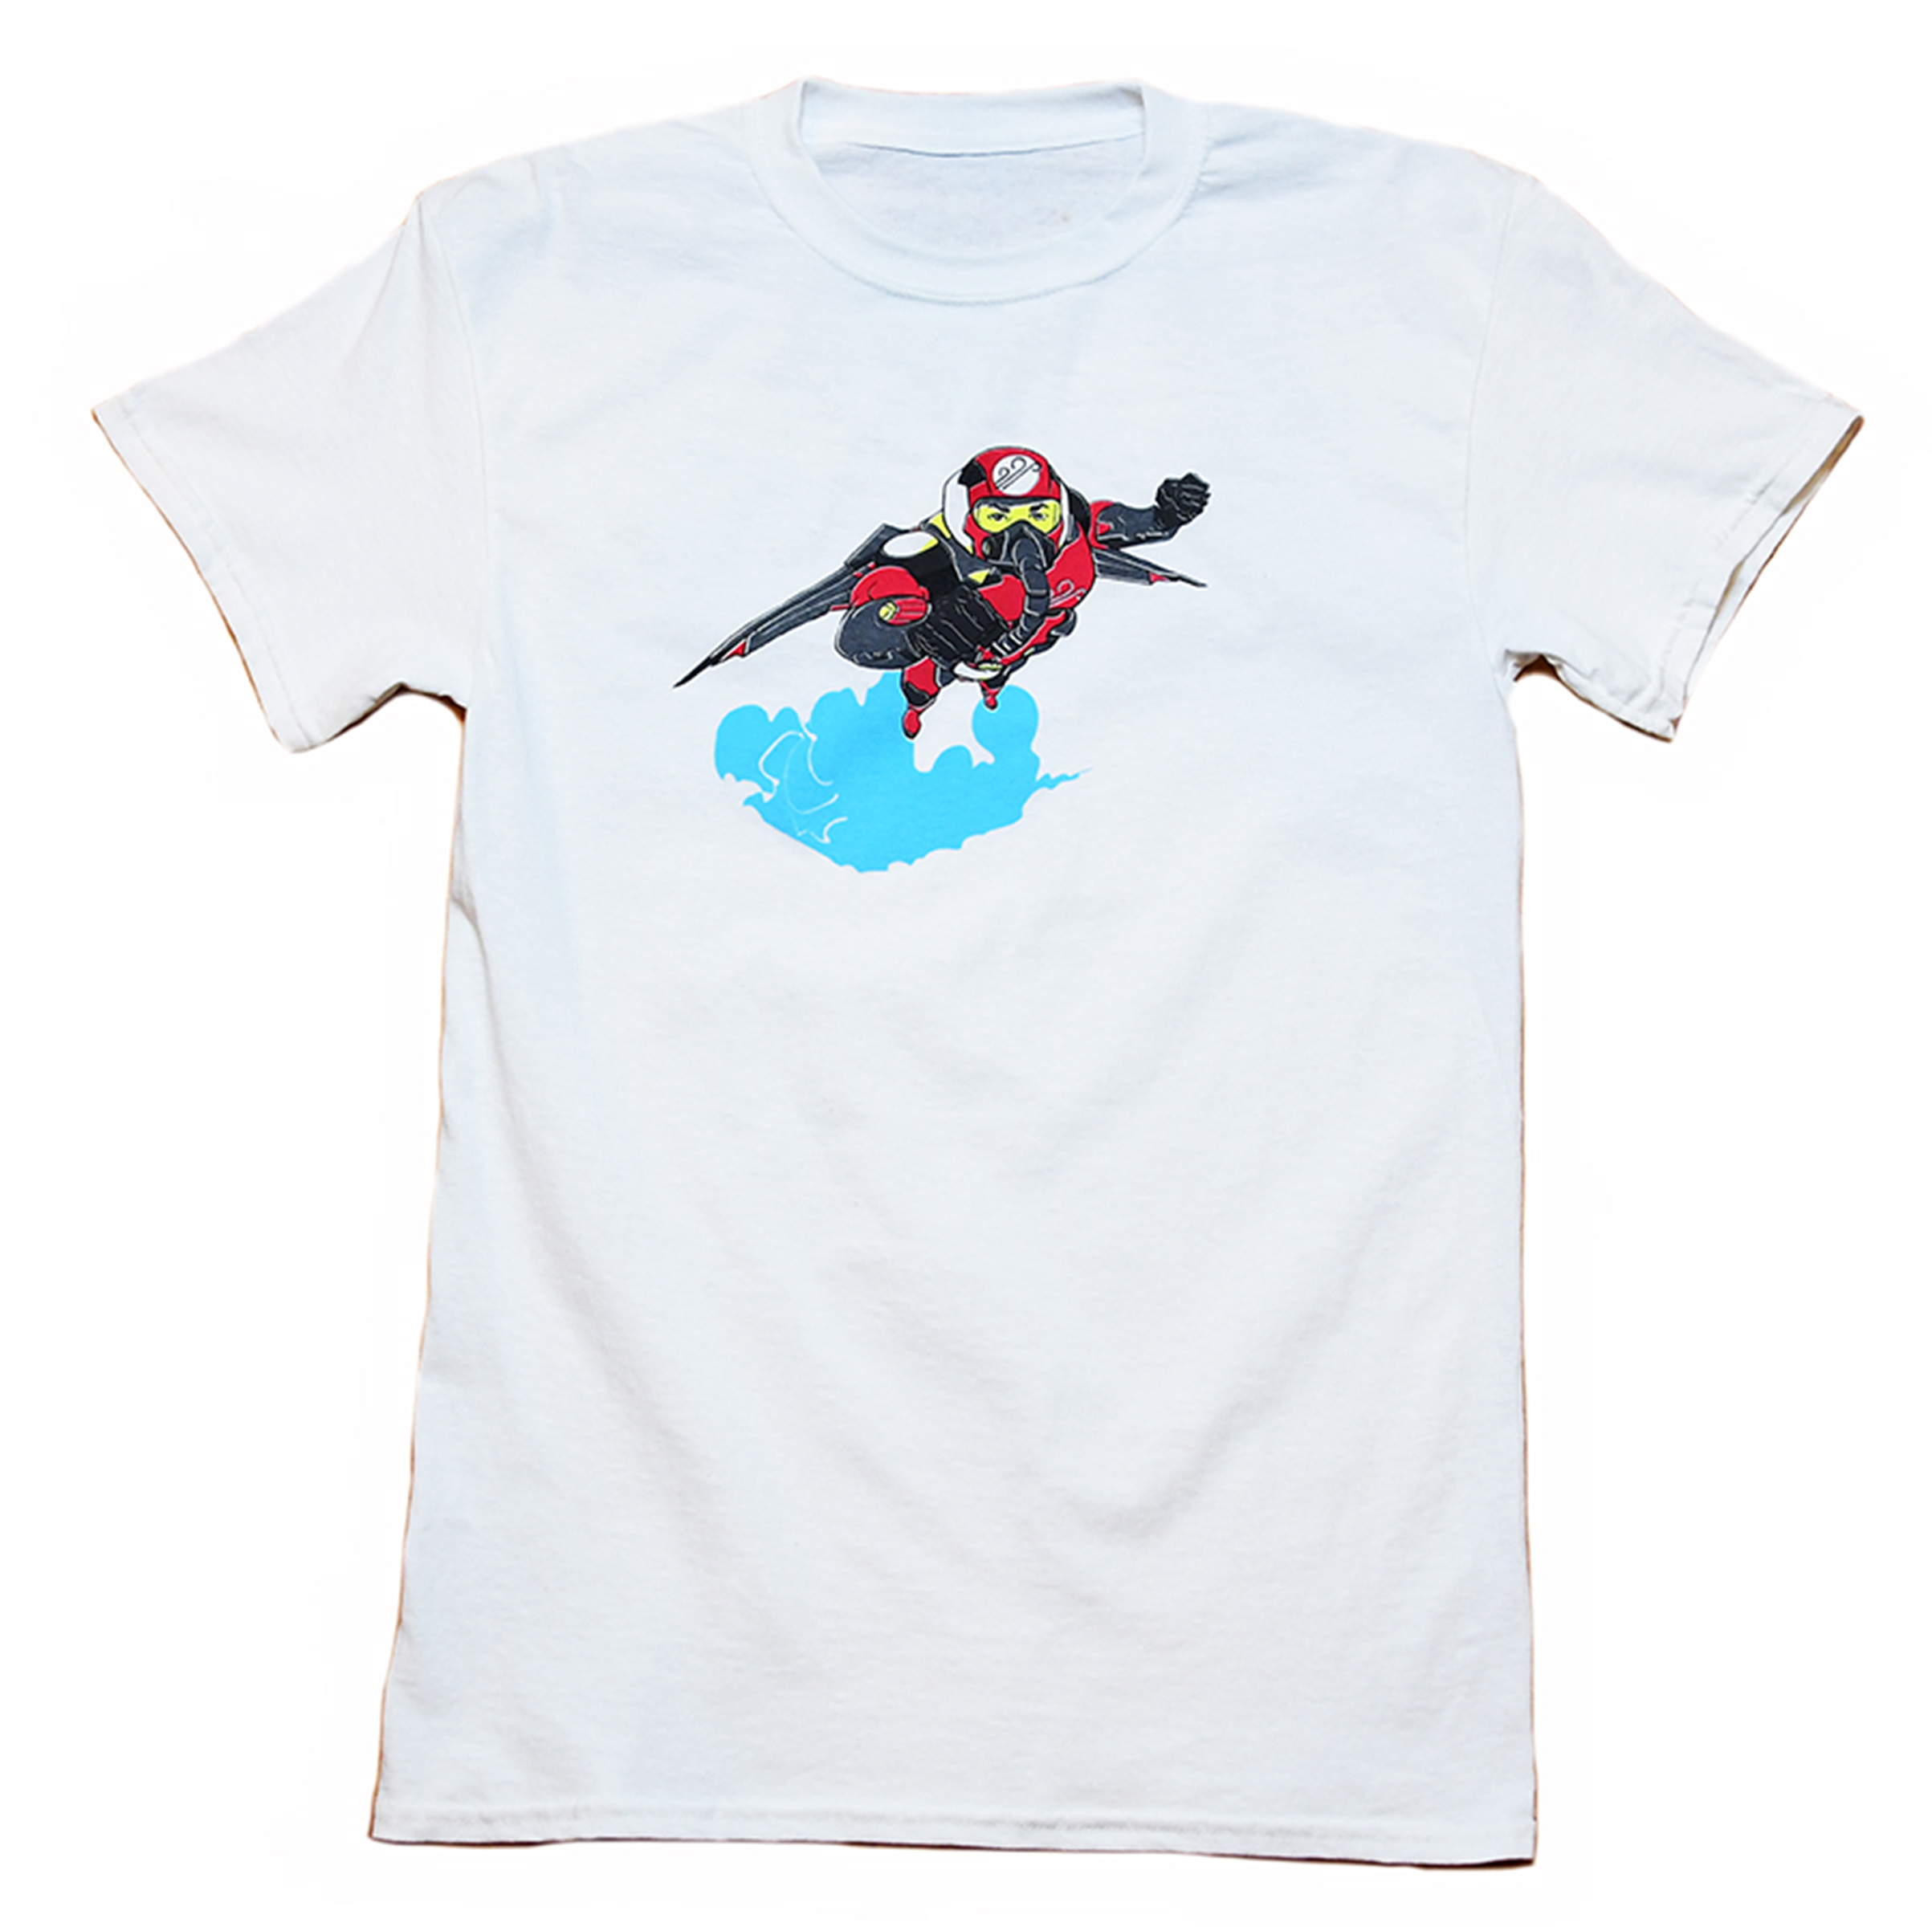 Big Air Jerry T-Shirt